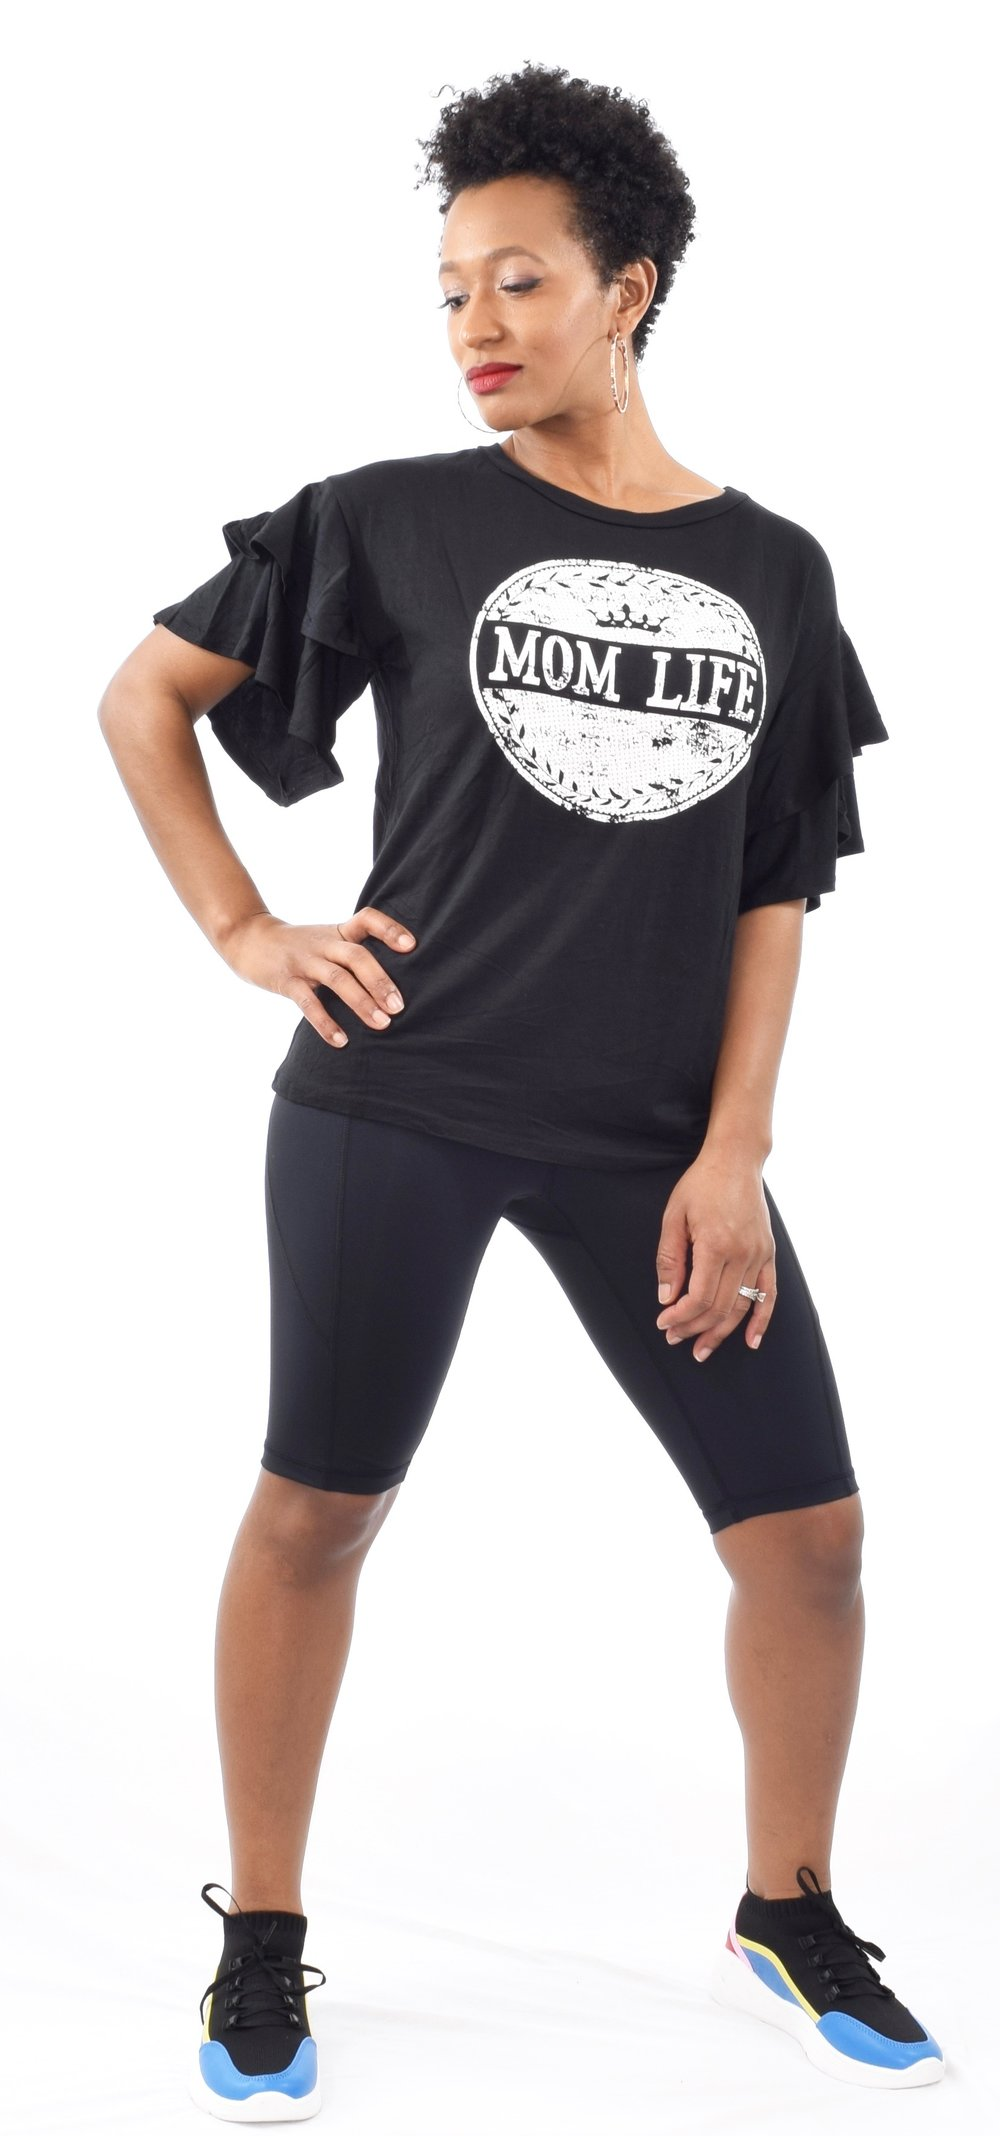 """Mom Life"" Ruffle Sleeve T-Shirt - $15"